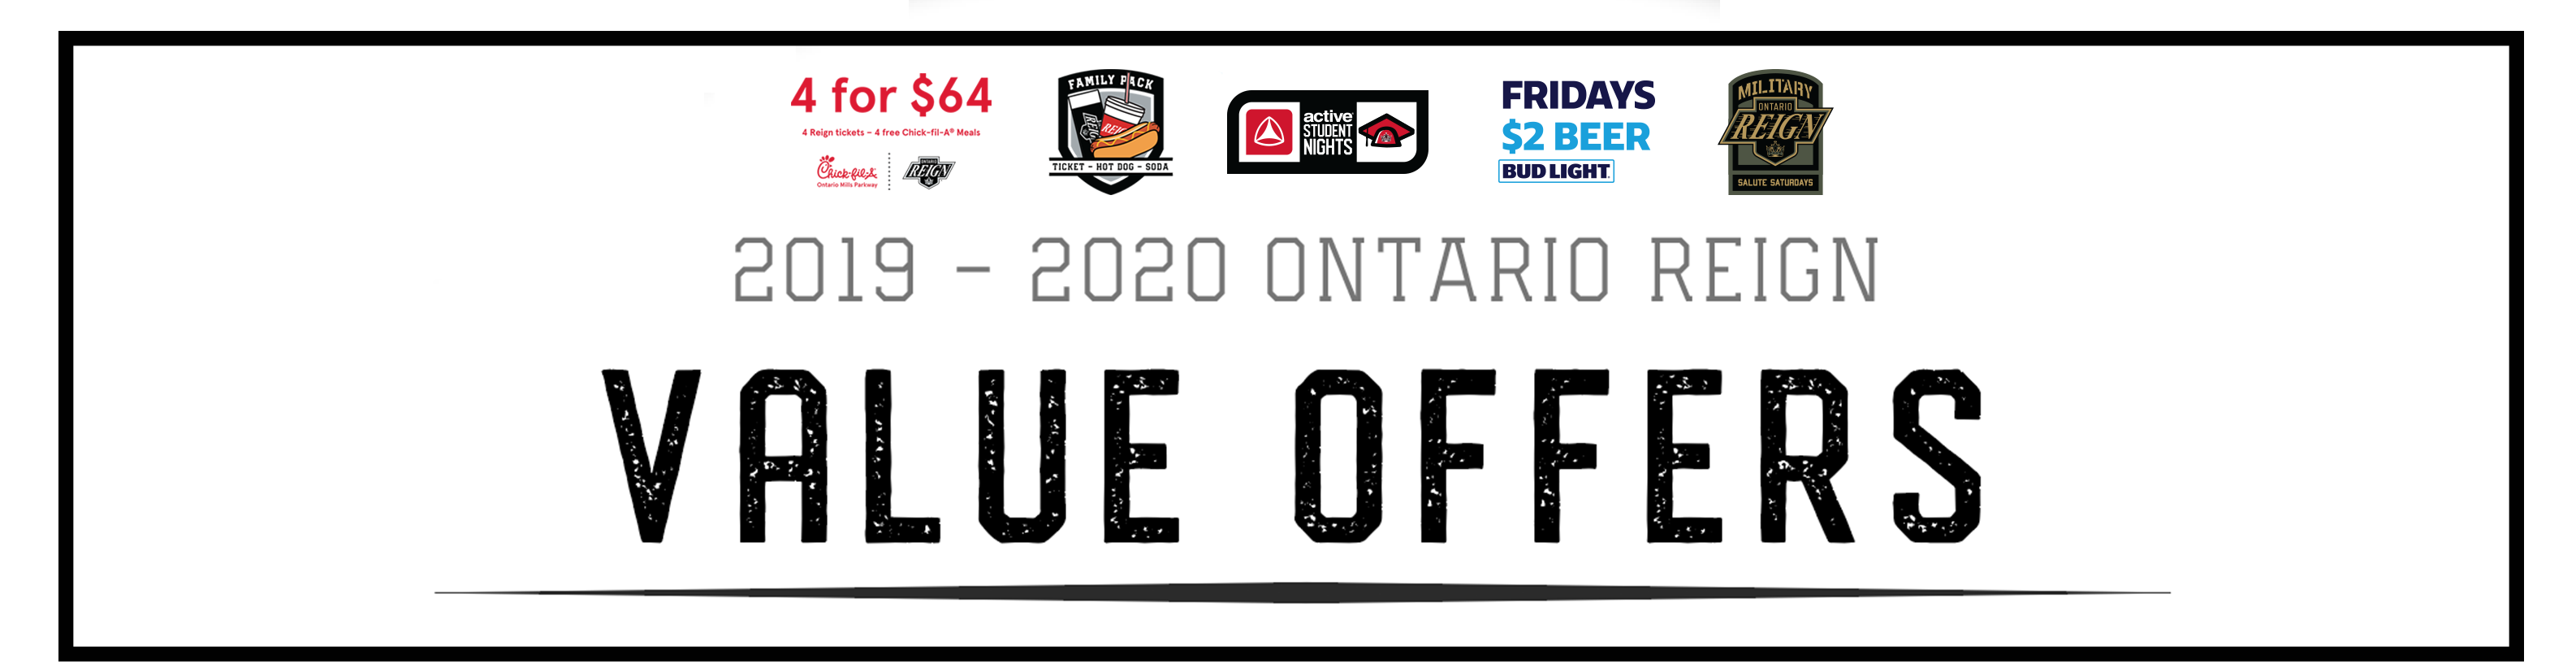 Chick Fil A Calendar Offer February 2020 Value Offers   Single Game Ticket Deals :: Ontario Reign